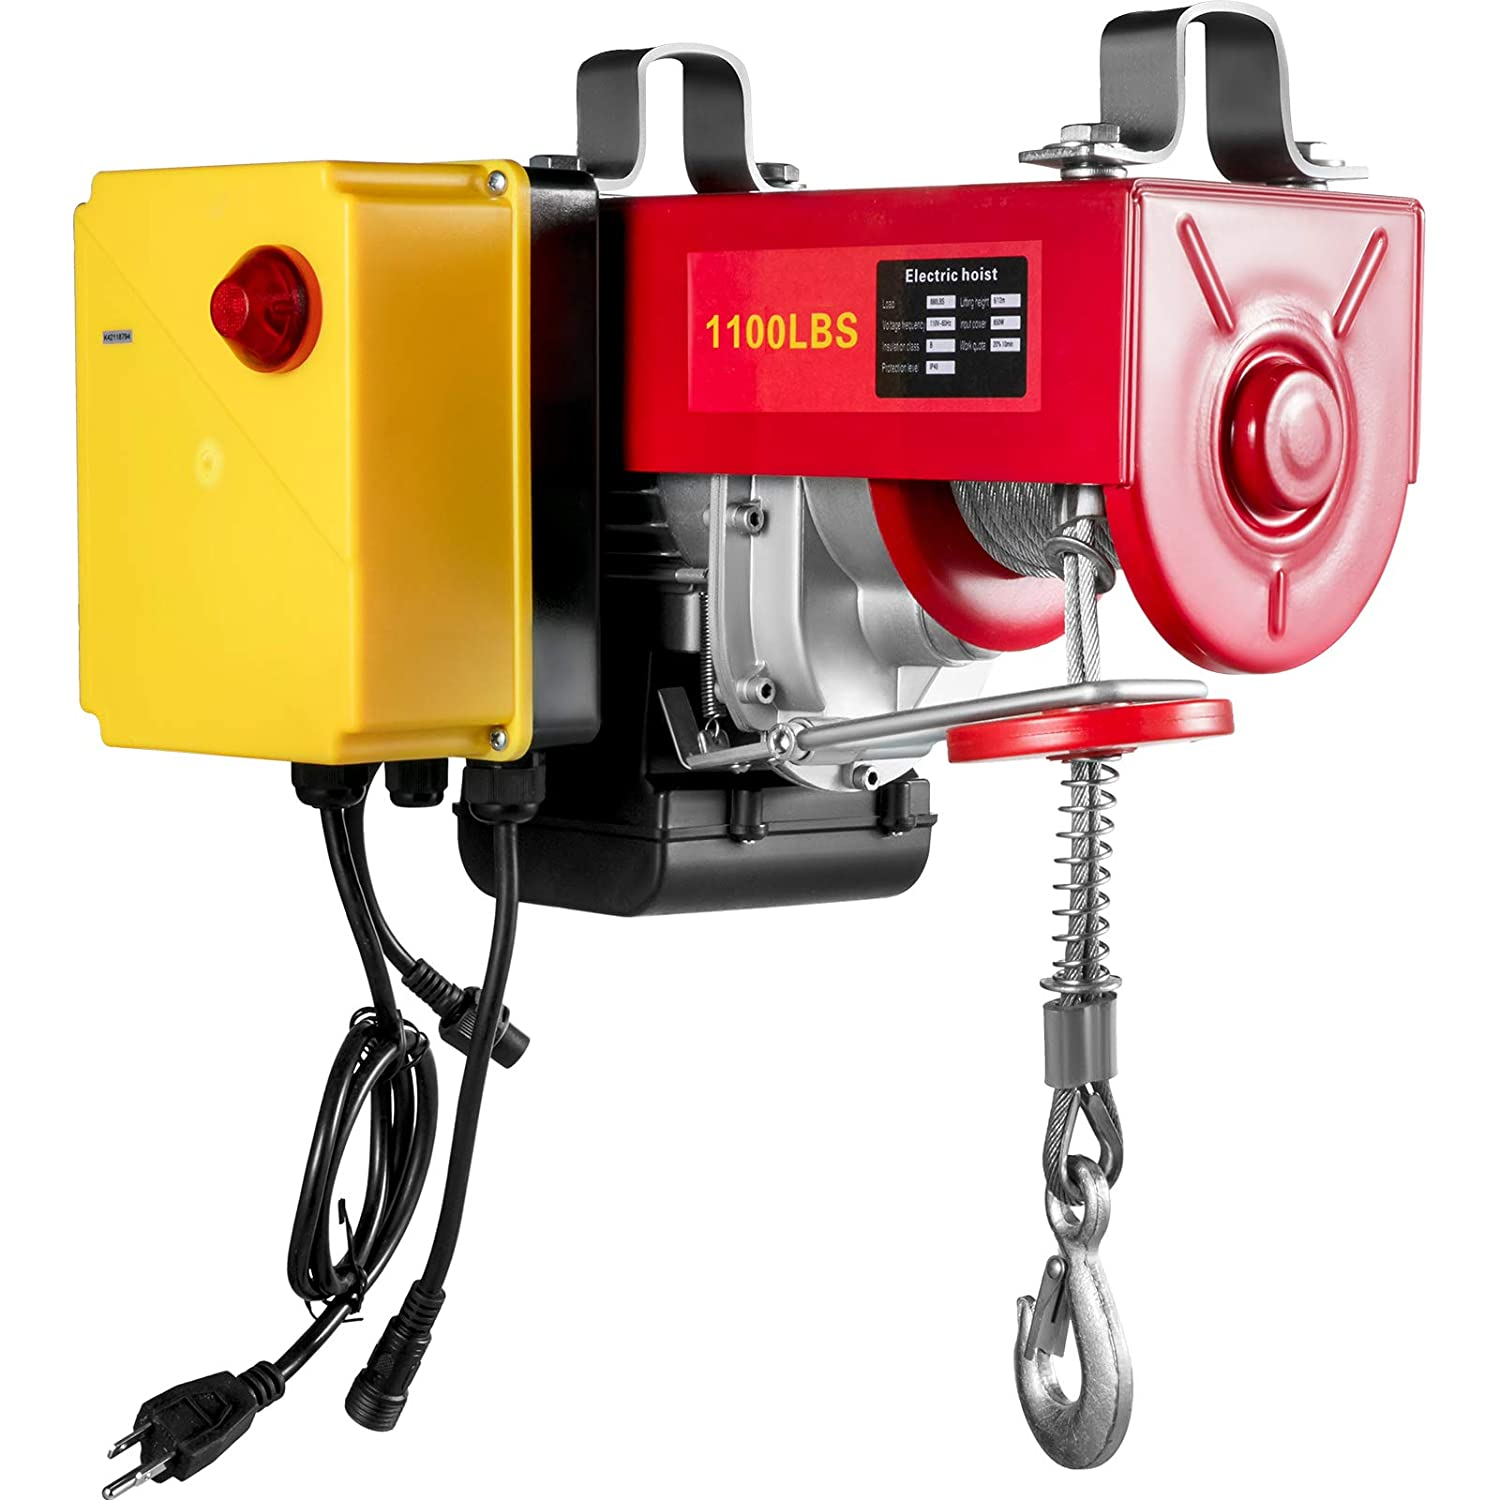 Cheap mail order shopping VEVOR 1100LBS Electric Hoist with Wireless Sing low-pricing Control Remote